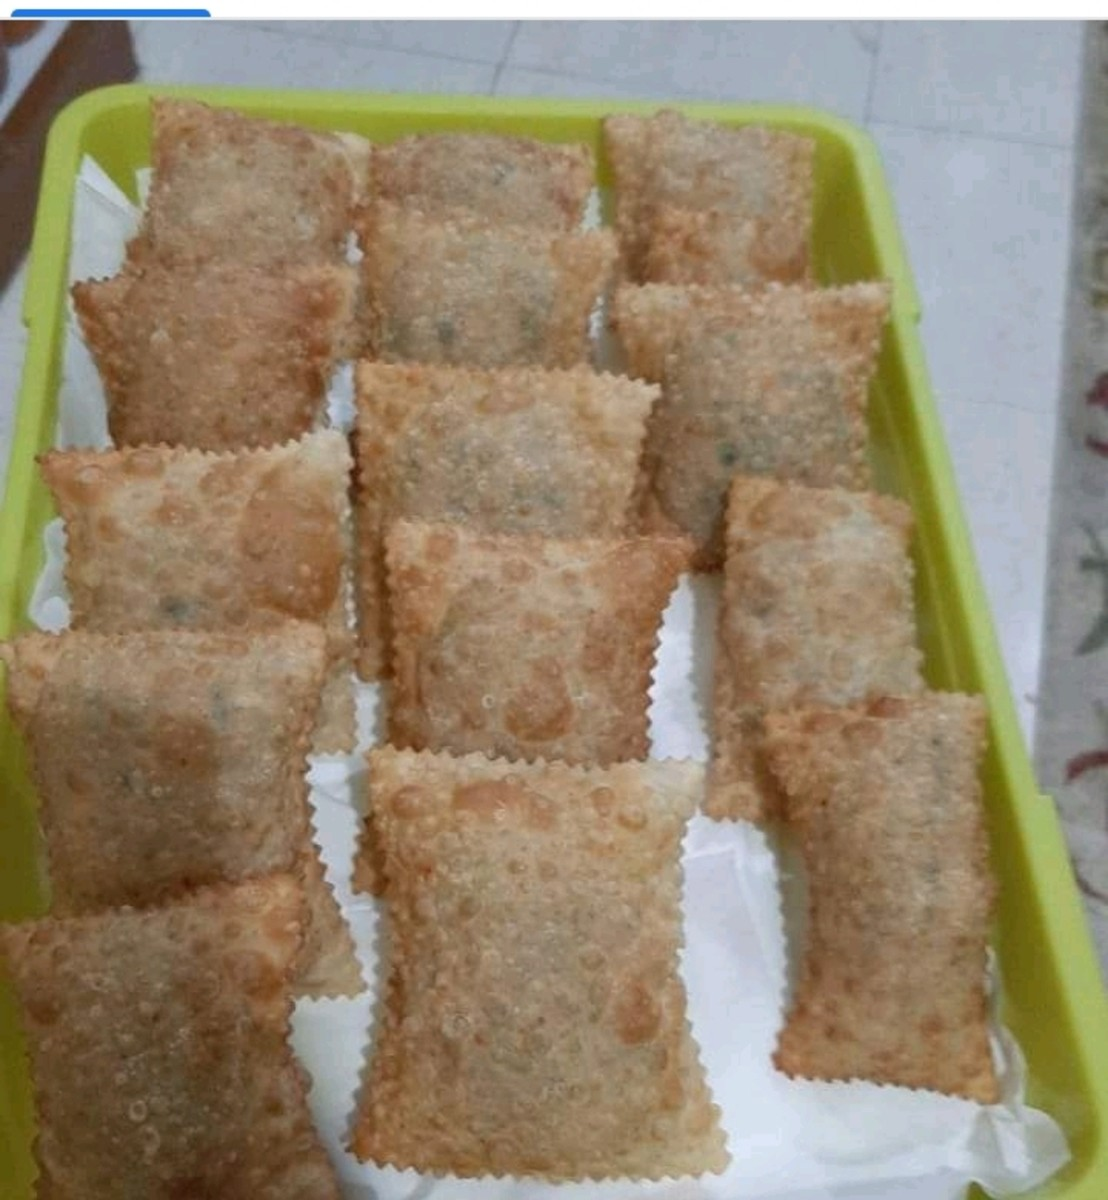 An afternoon samosa snack. A combination of meat,green onions and flour as the main ingredients.